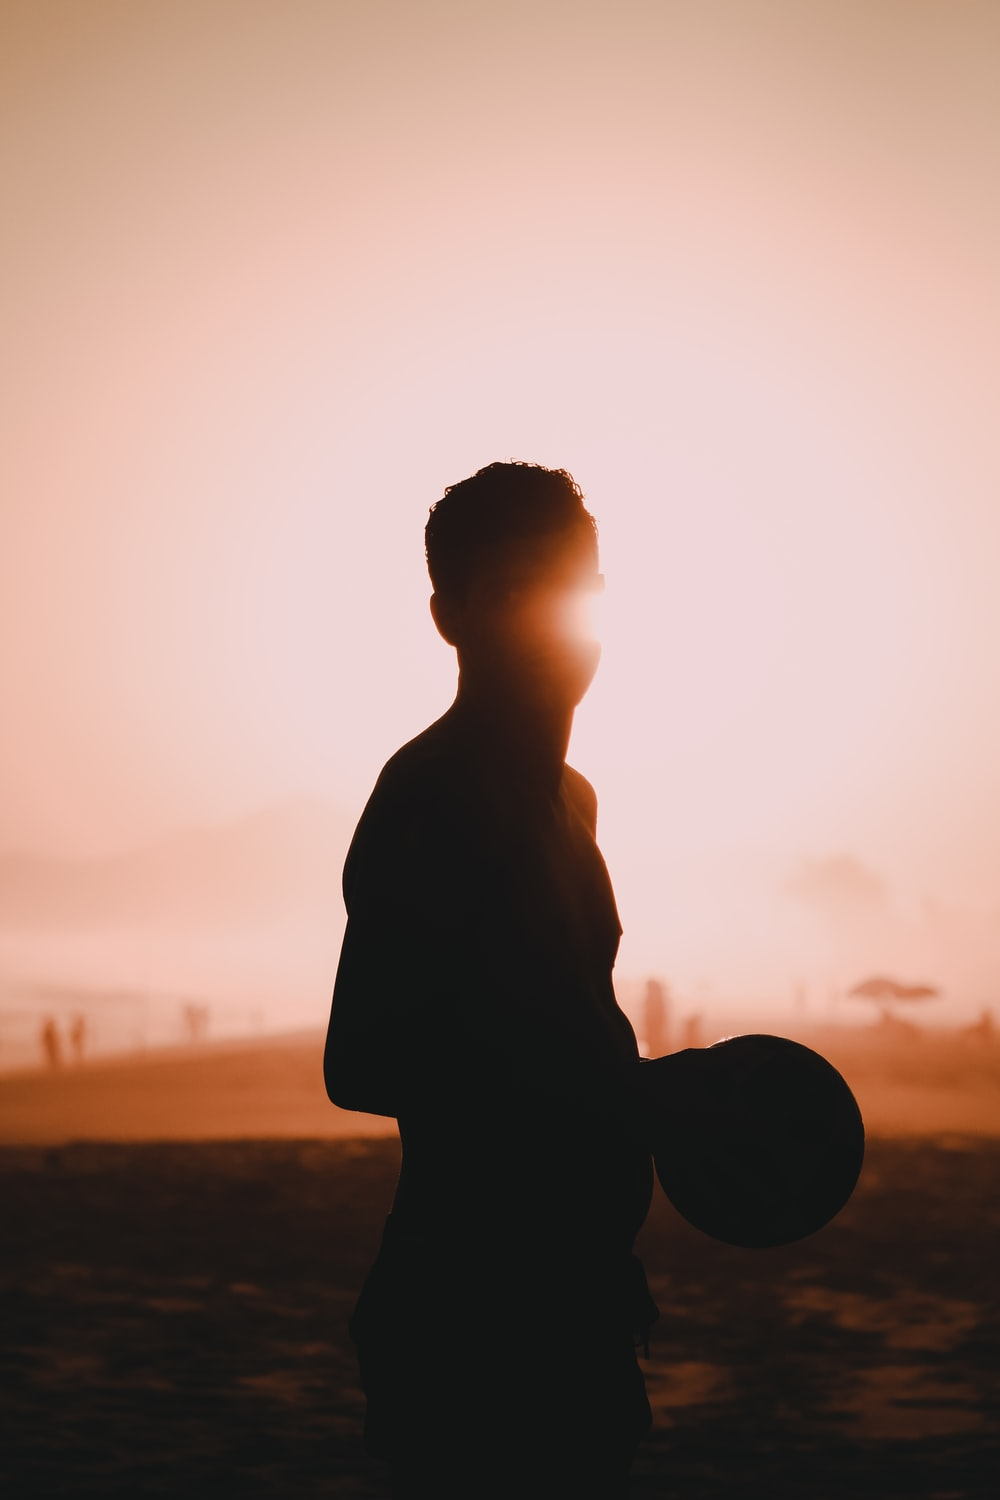 silhouette of man standing on field during sunset